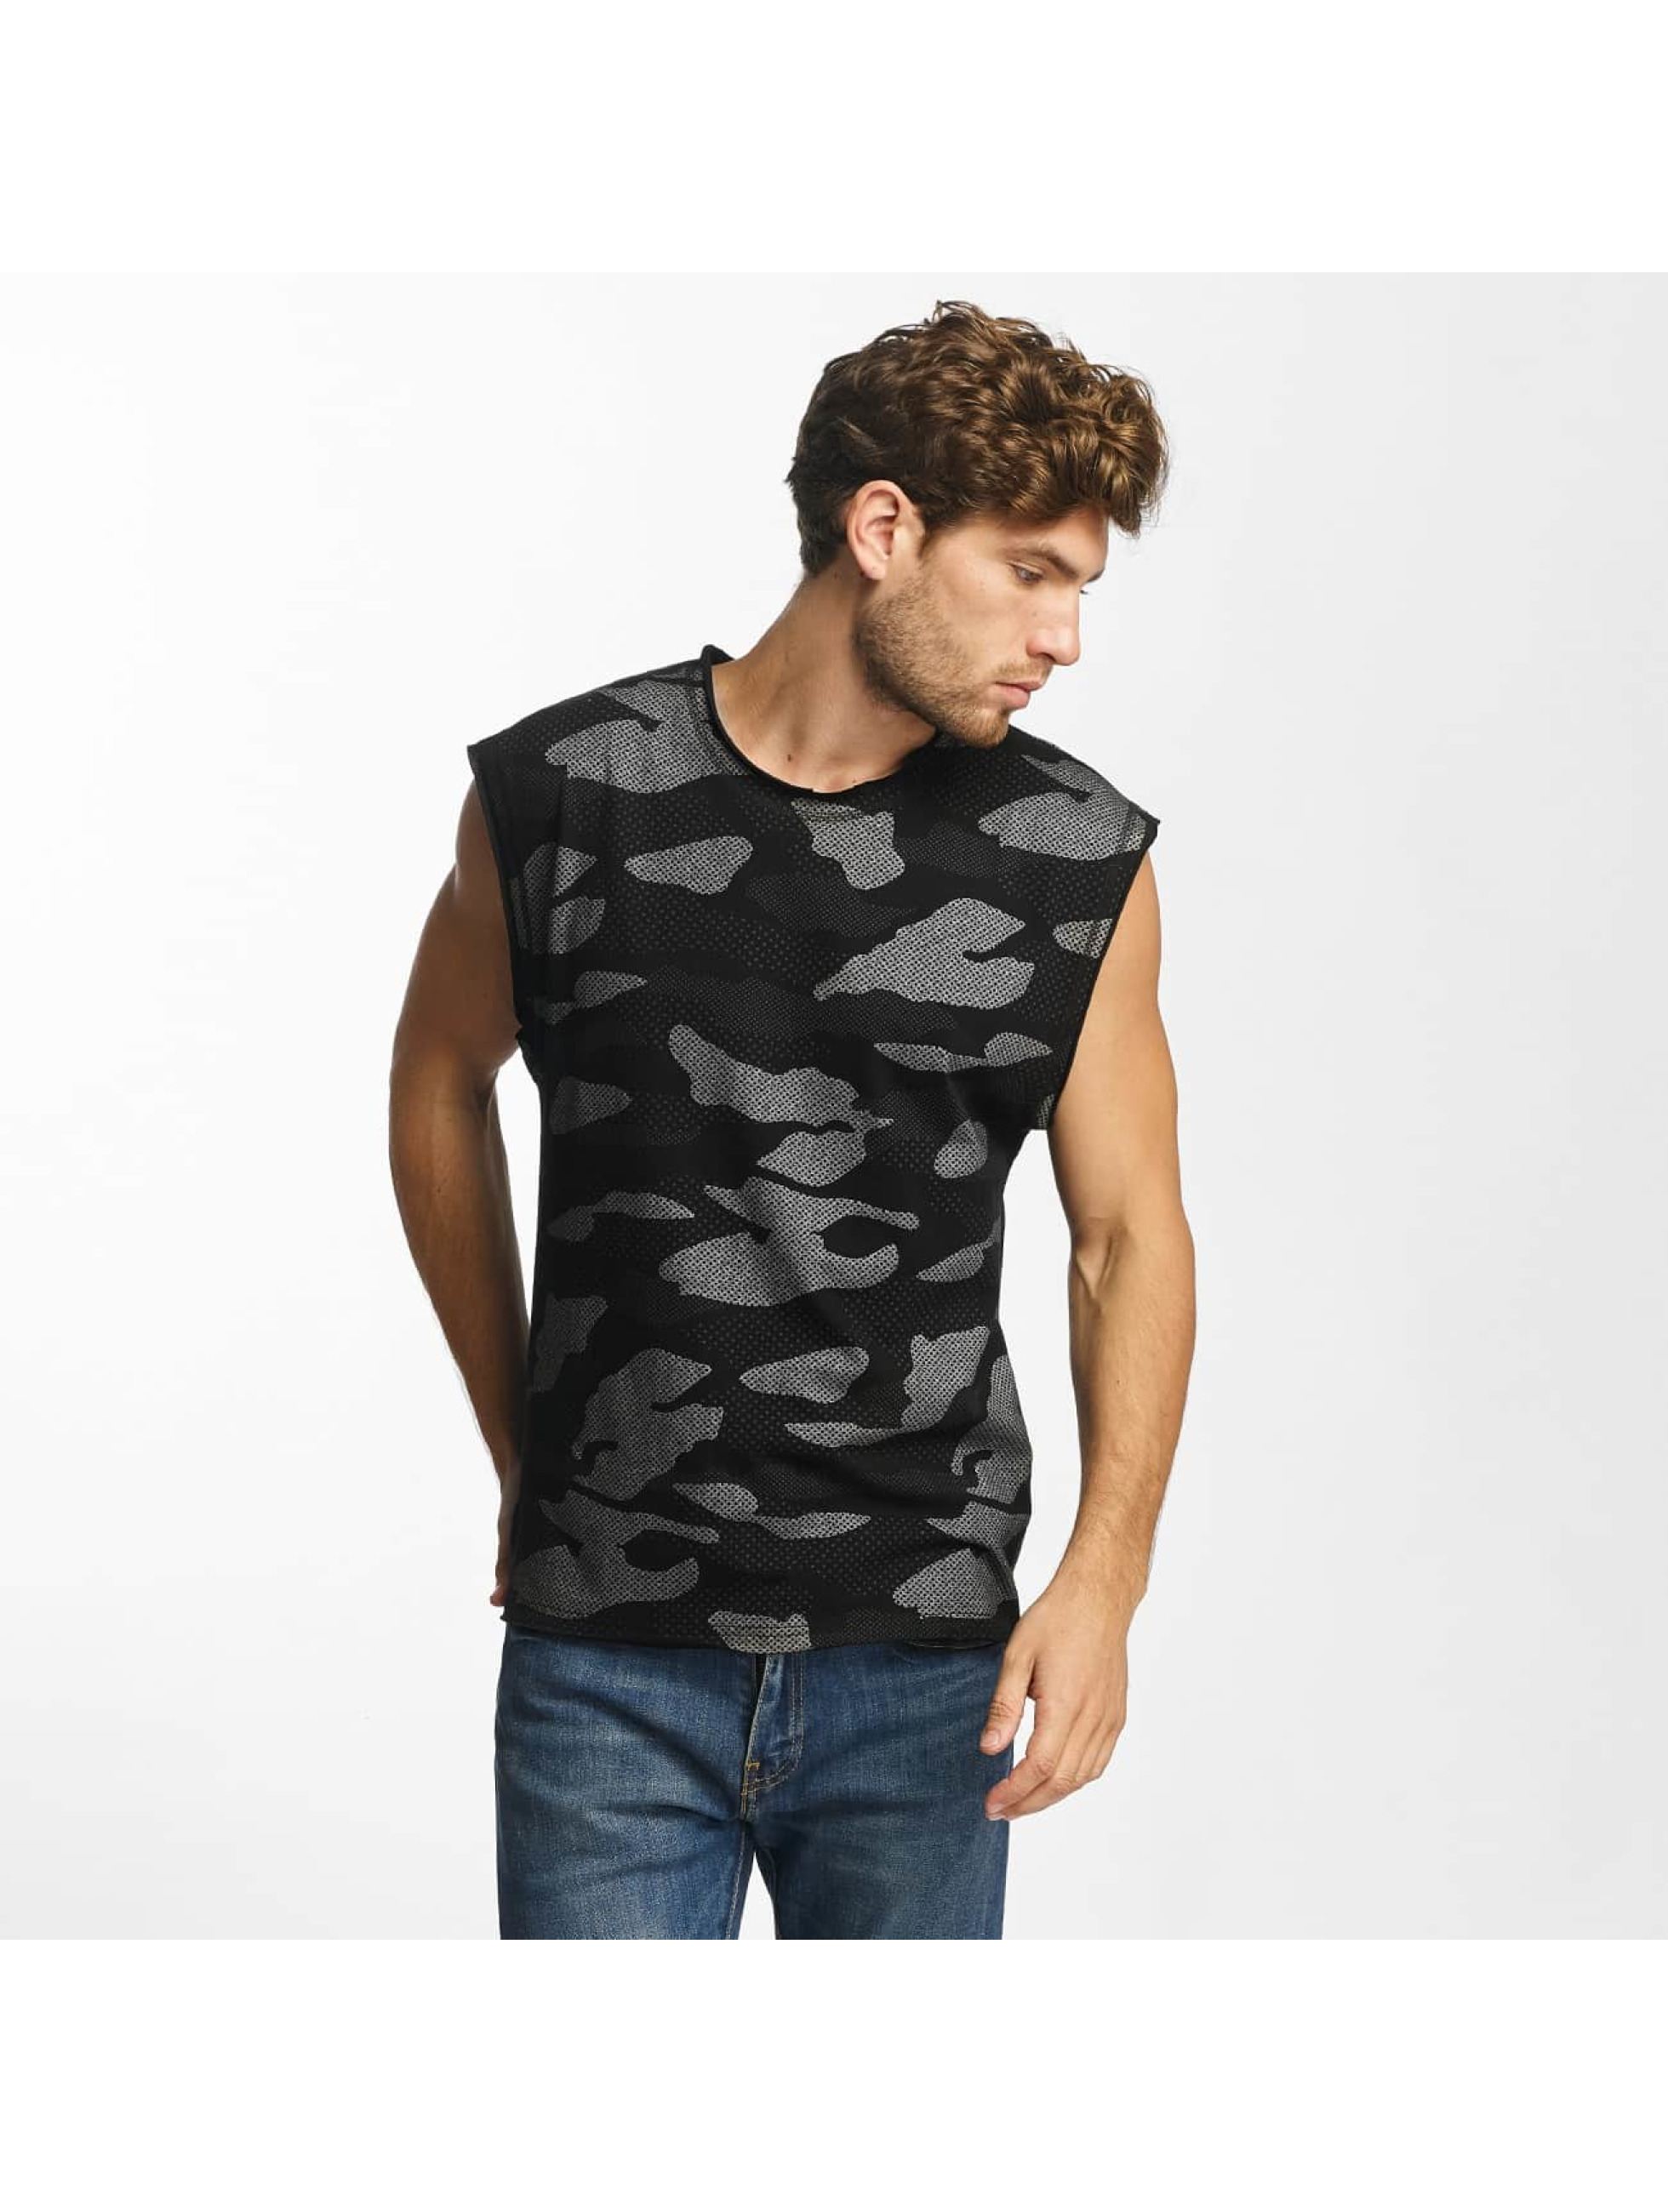 Red Bridge Tank Tops Contrast Effect Camouflage Pixel negro